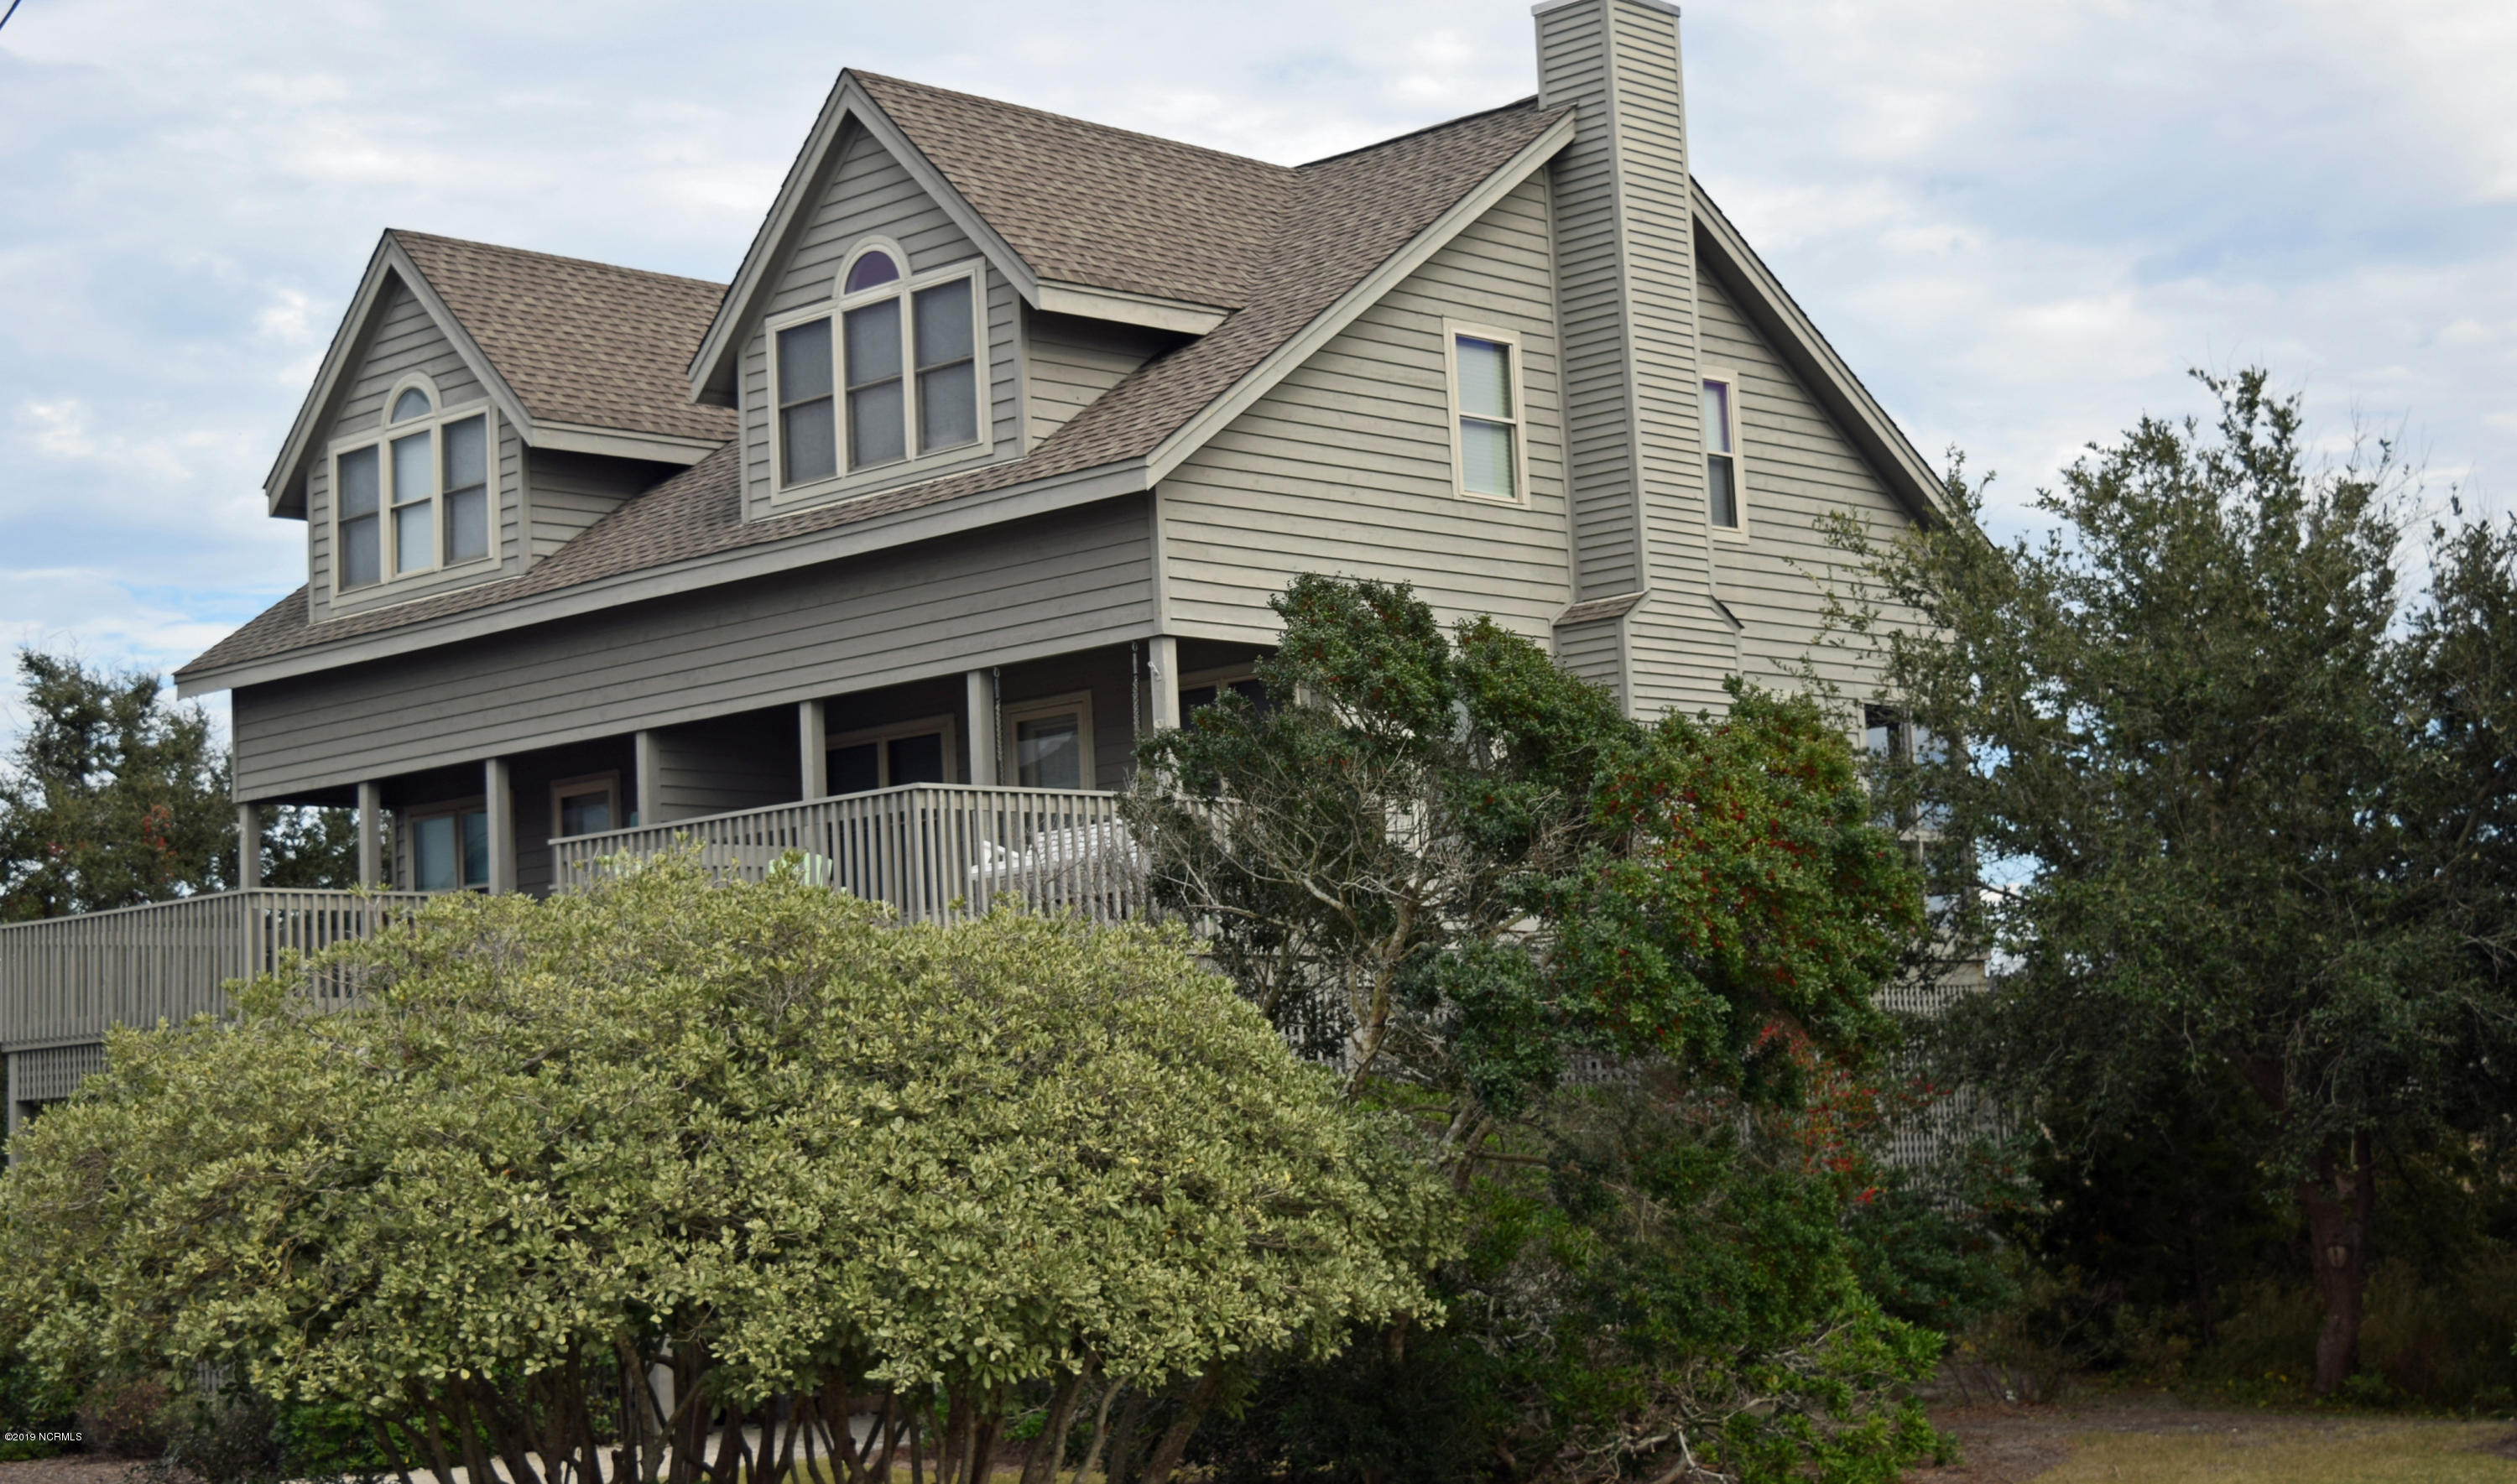 2121 Inlet Avenue, Topsail Beach, North Carolina 28445, 2 Bedrooms Bedrooms, 5 Rooms Rooms,2 BathroomsBathrooms,Townhouse,For sale,Inlet Avenue,100194478